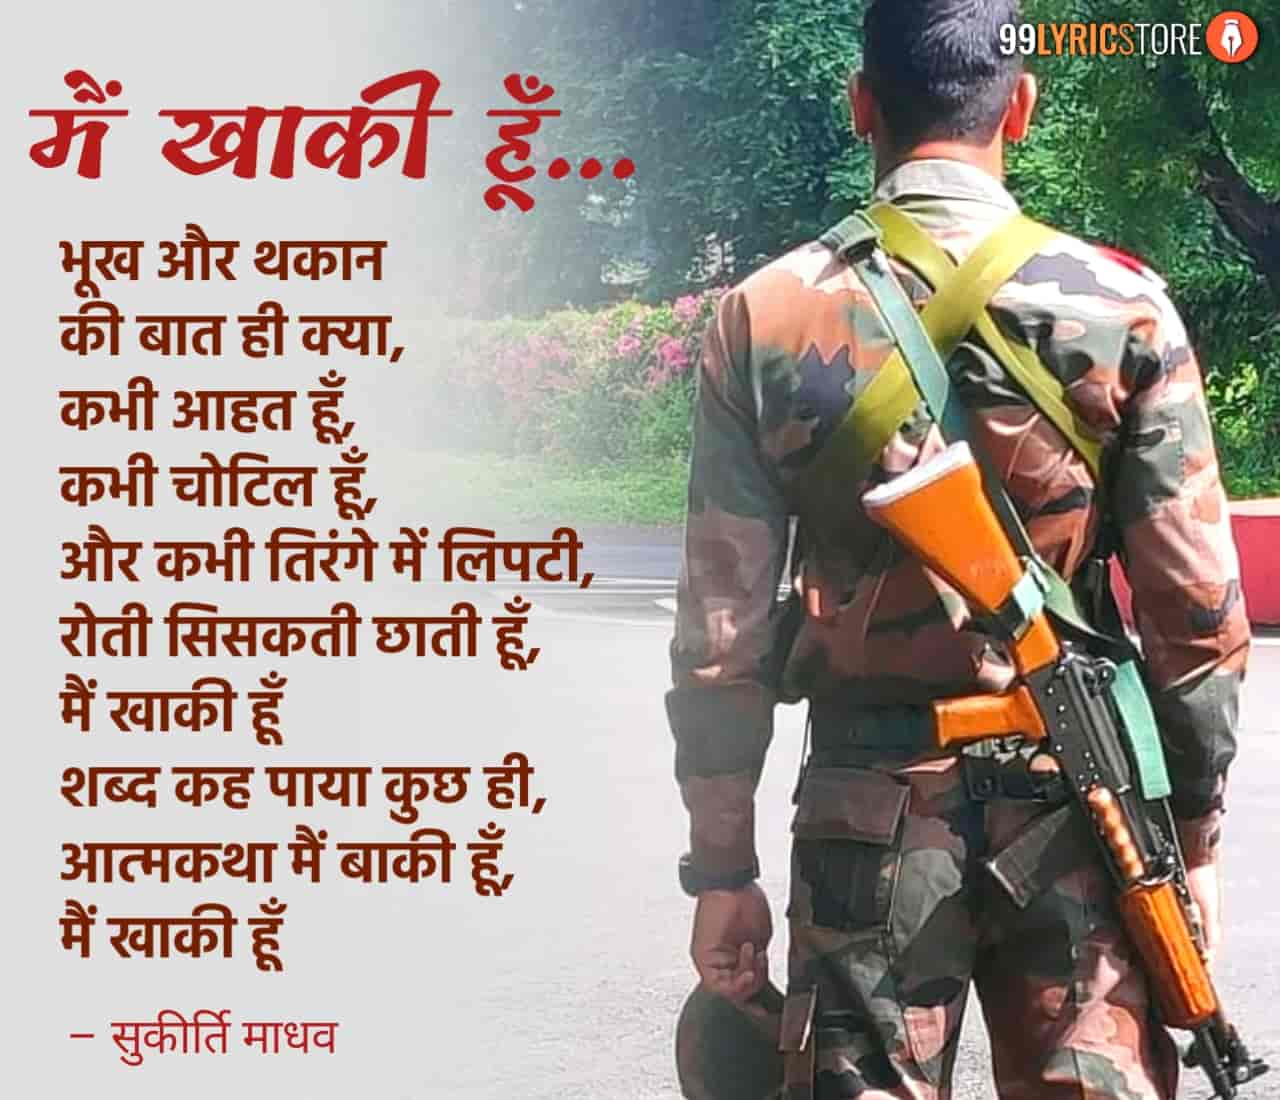 This beautiful poem is a dedication to every man who works in the interest of the country. This poem 'Main Khaki Hoon' was written by IPS officer Sukriti Madhav ji.